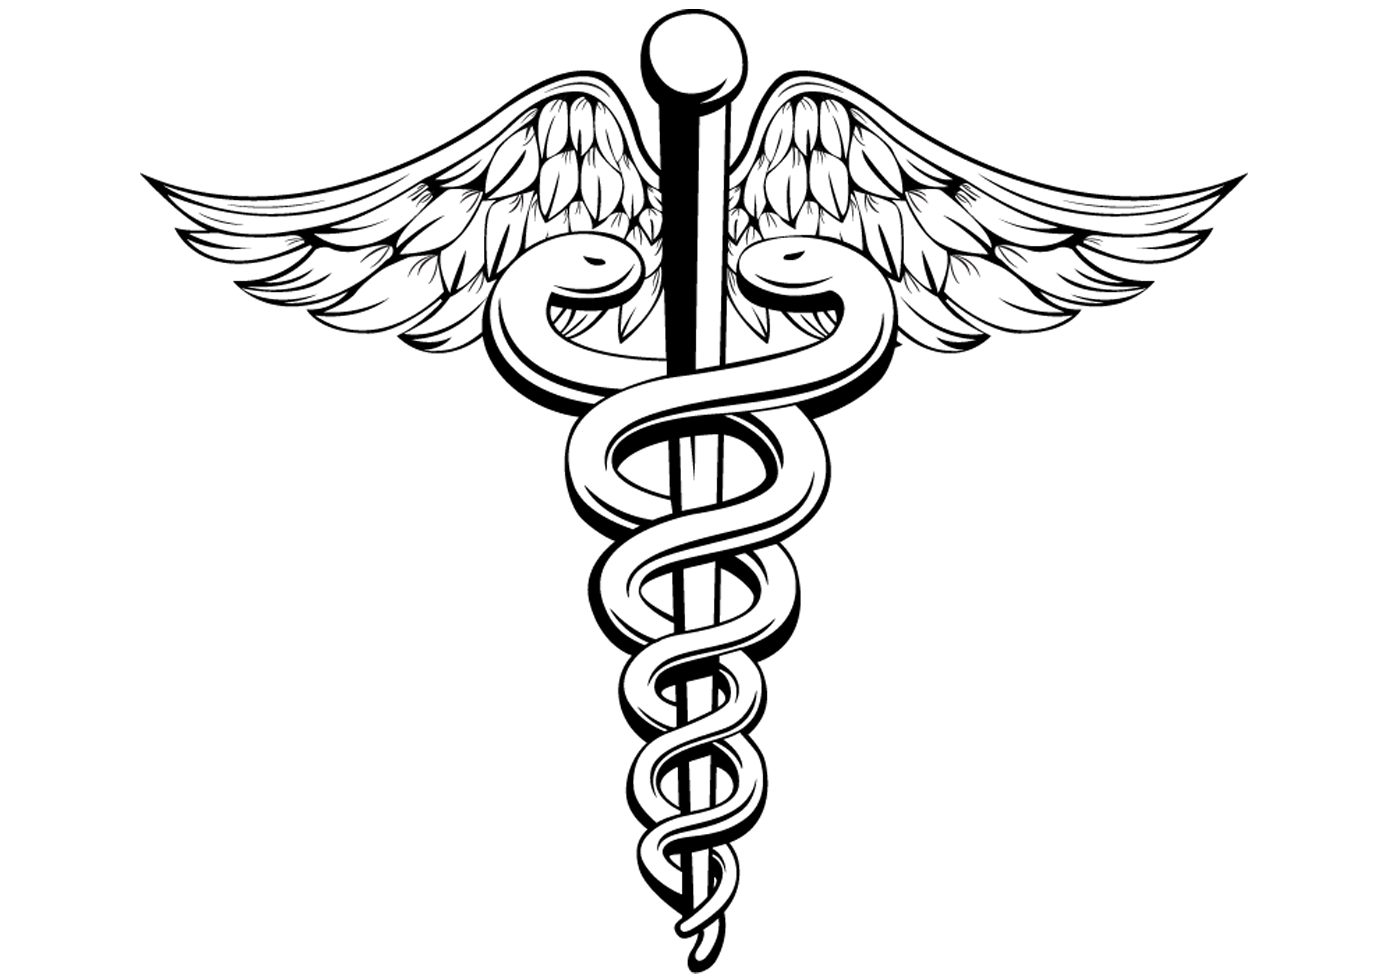 Medicine clipart medical symbol, Medicine medical symbol.